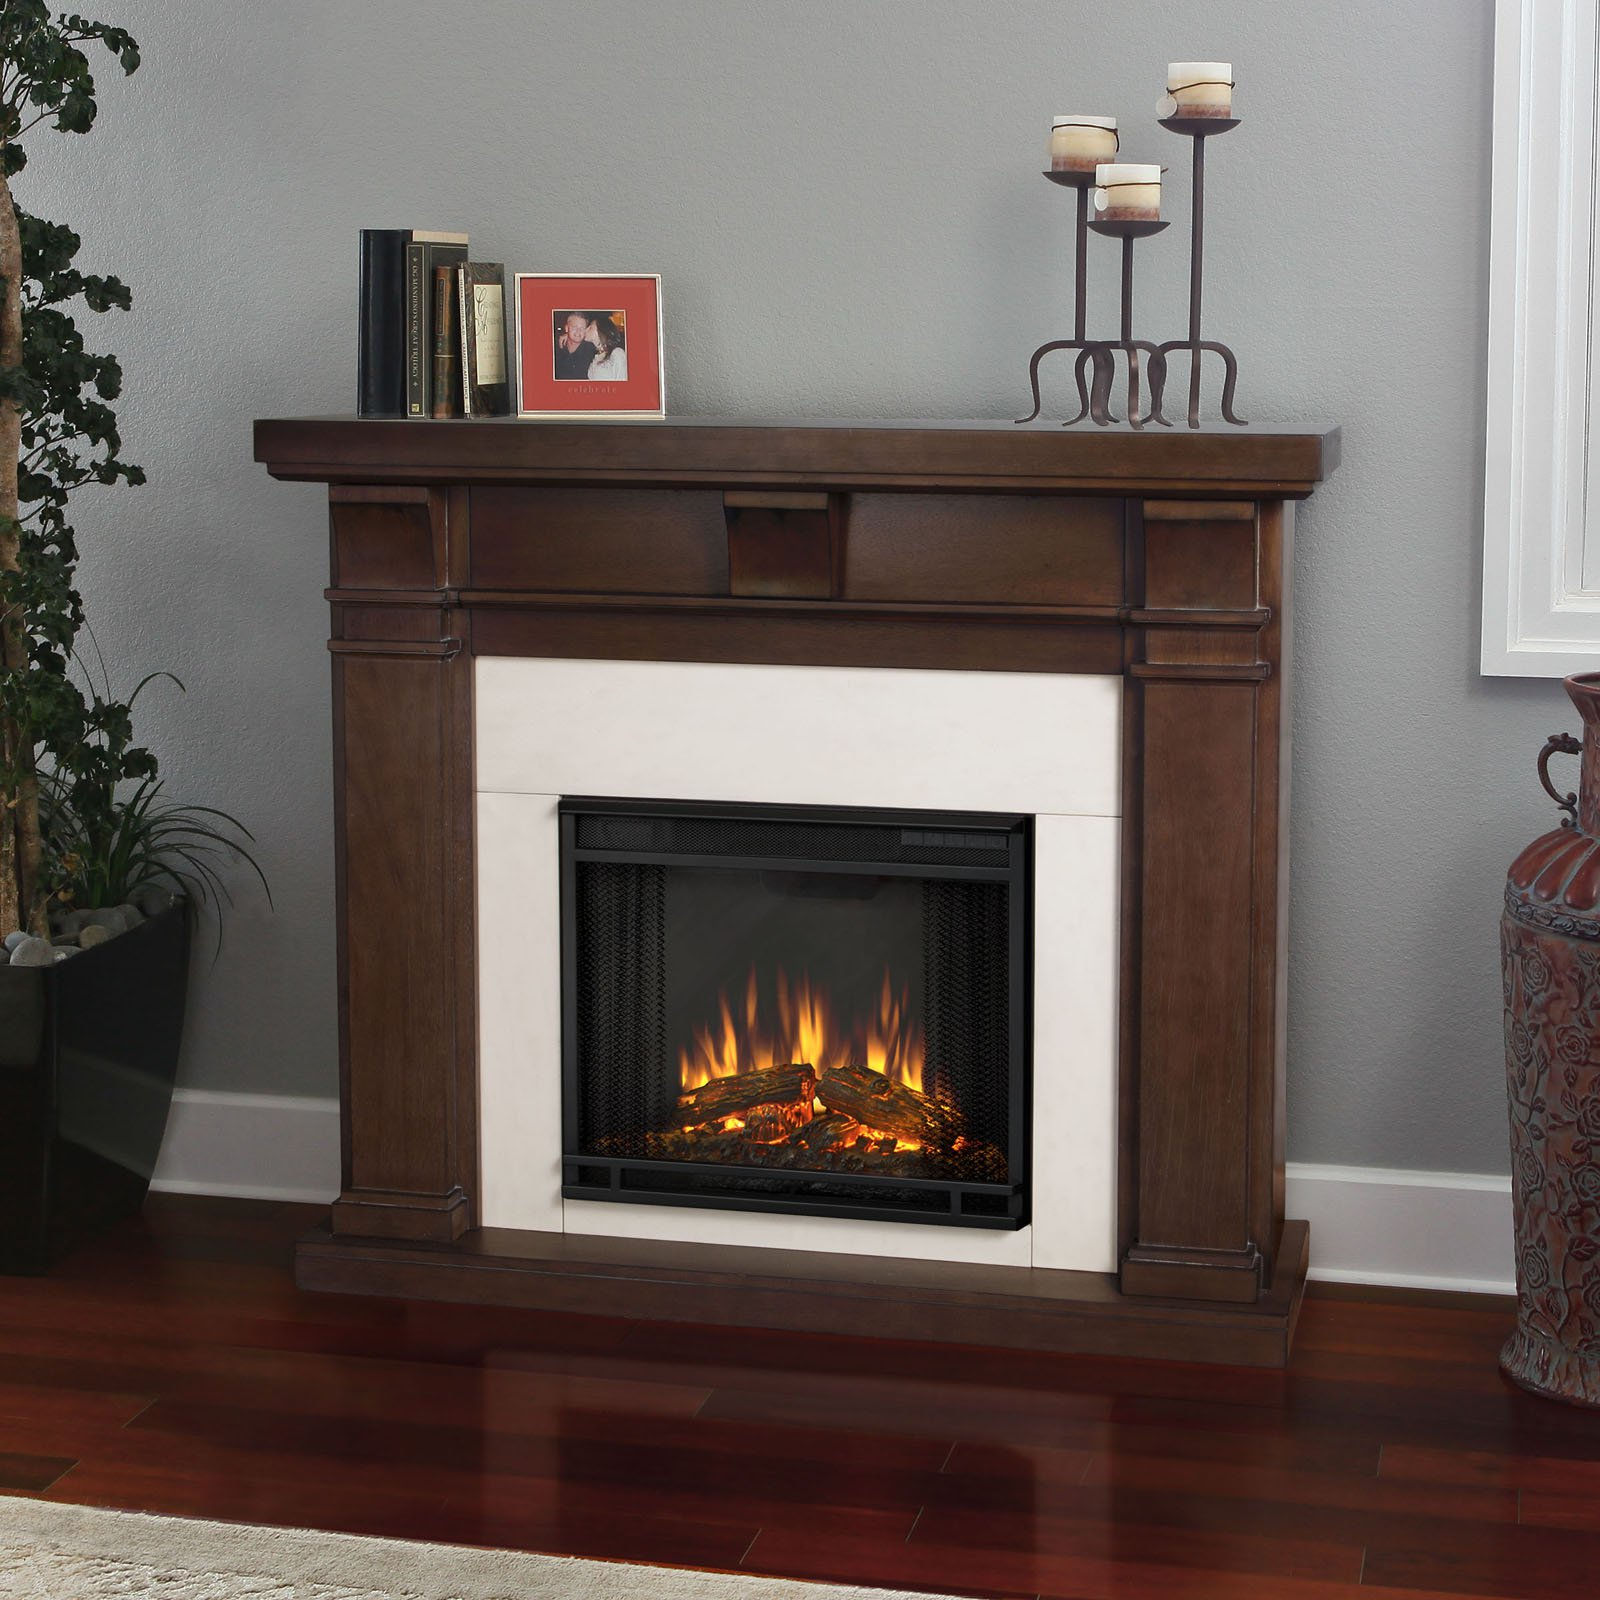 Real Flame Porter Electric Fireplace - Vintage Black Maple